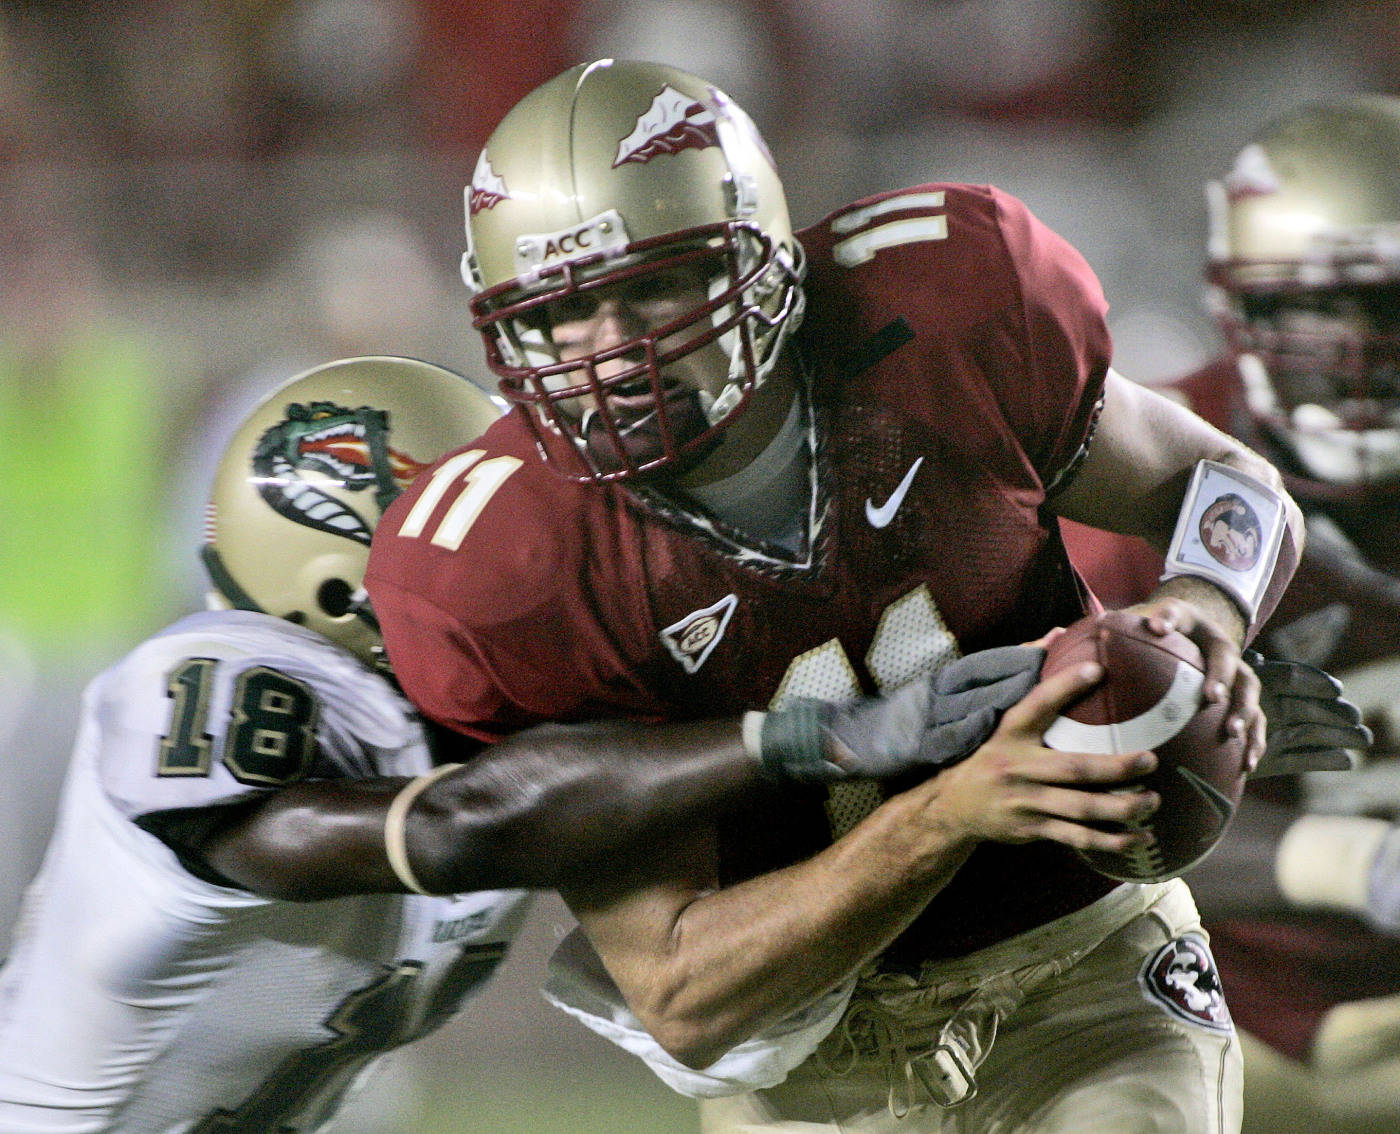 Florida State quarterback Drew Weatherford, right, runs for third-quarter yardage as UAB defender Will Dunbar, left, moves in to make the tackle during a football game Saturday, Sept. 8, 2007, in Tallahassee, Fla. Florida State won 34-24. (AP Photo/Phil Coale)